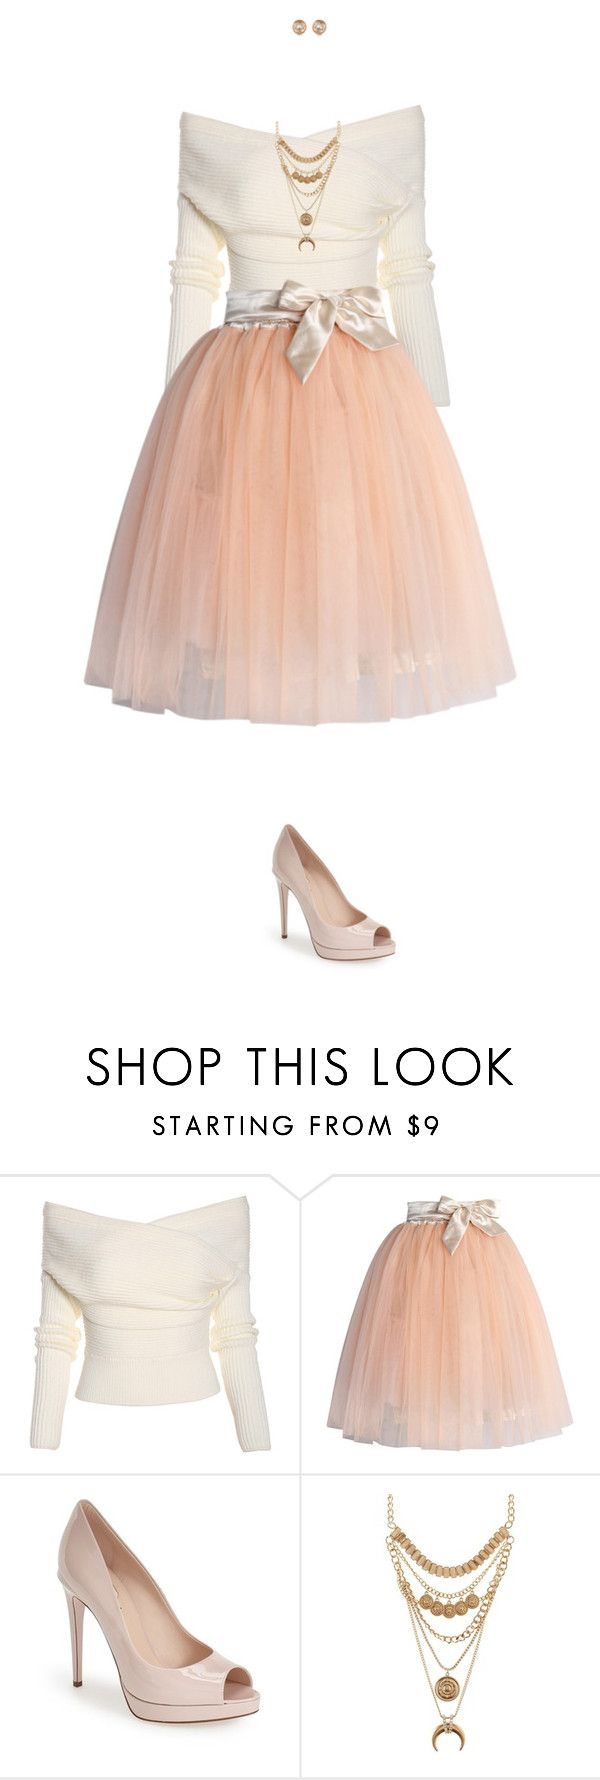 """""""Is It Too Late To Say Sorry"""" by pinkbuttons85 ❤ liked on Polyvore featuring Chicwish, Fendi, Charlotte Russe and Michael Kors"""